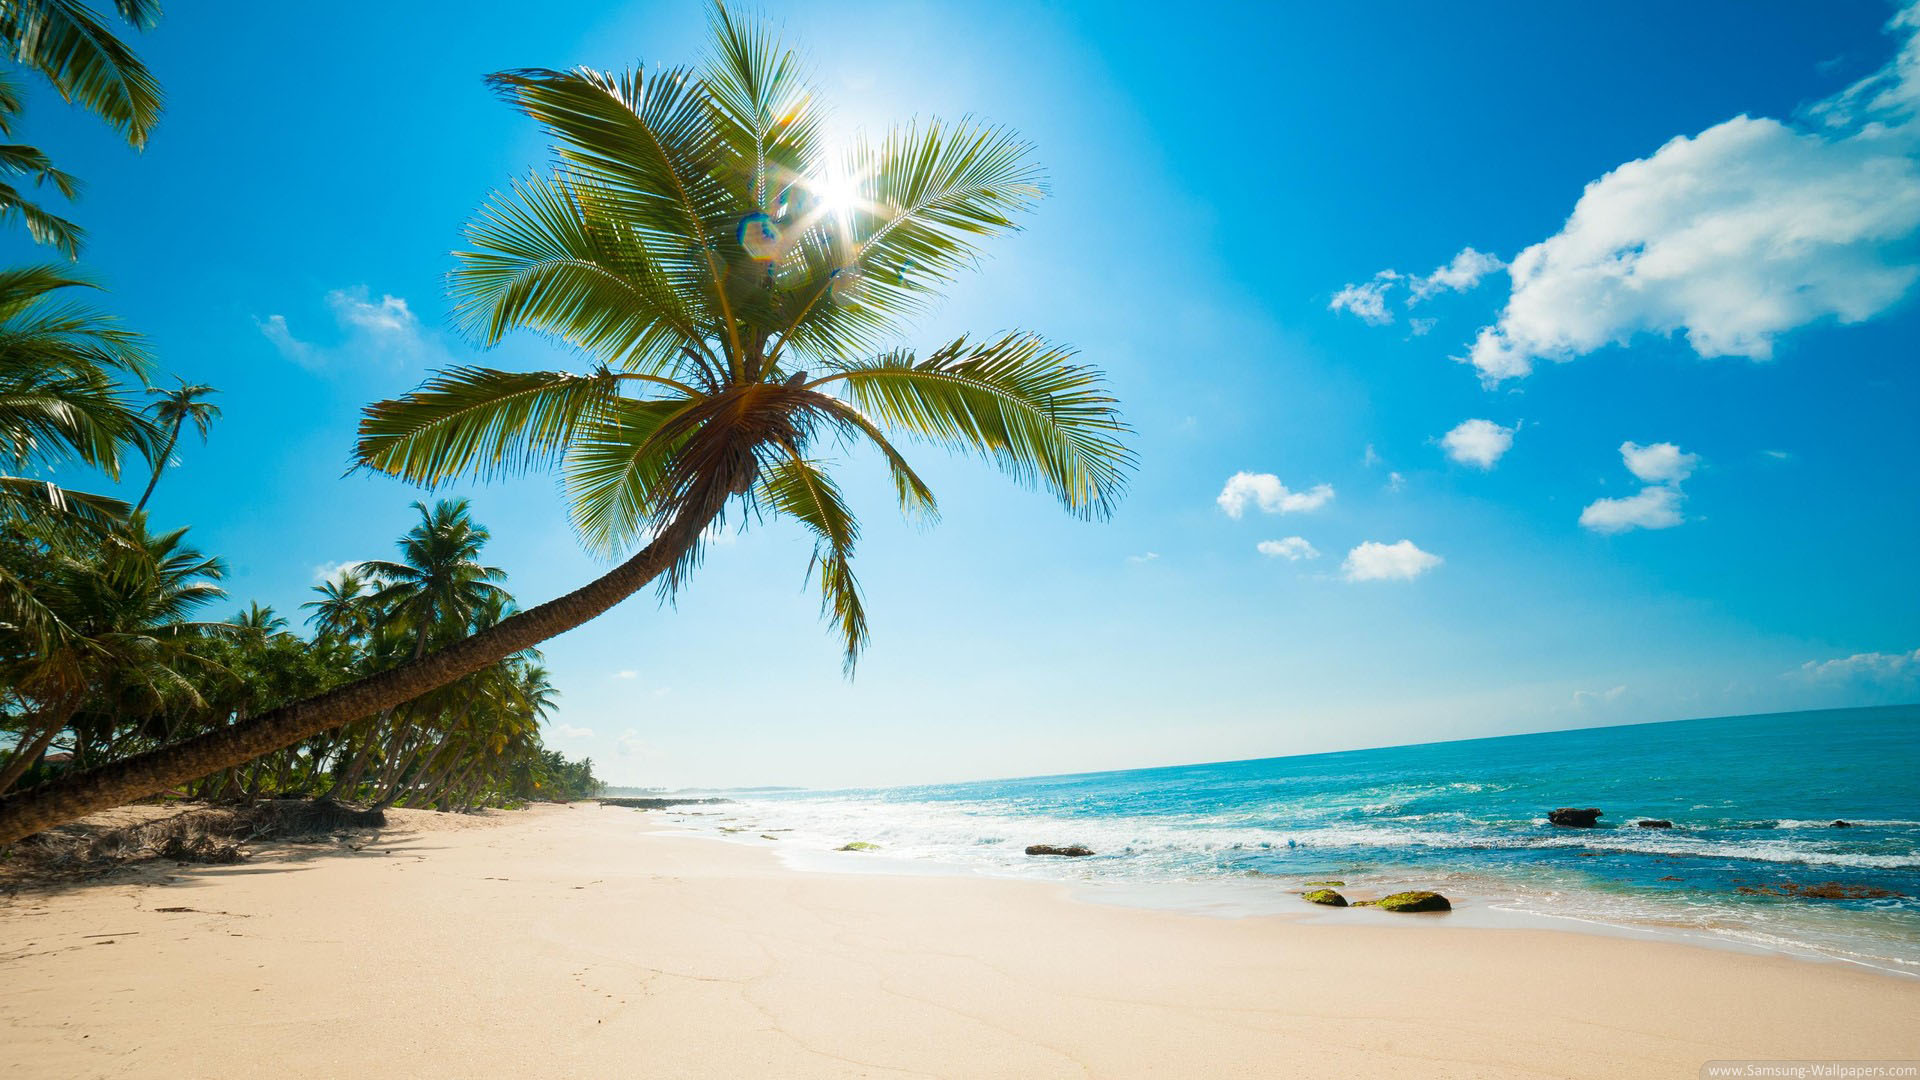 HD Beautiful Beach Wallpapers | Beautiful Beach Best Pictures